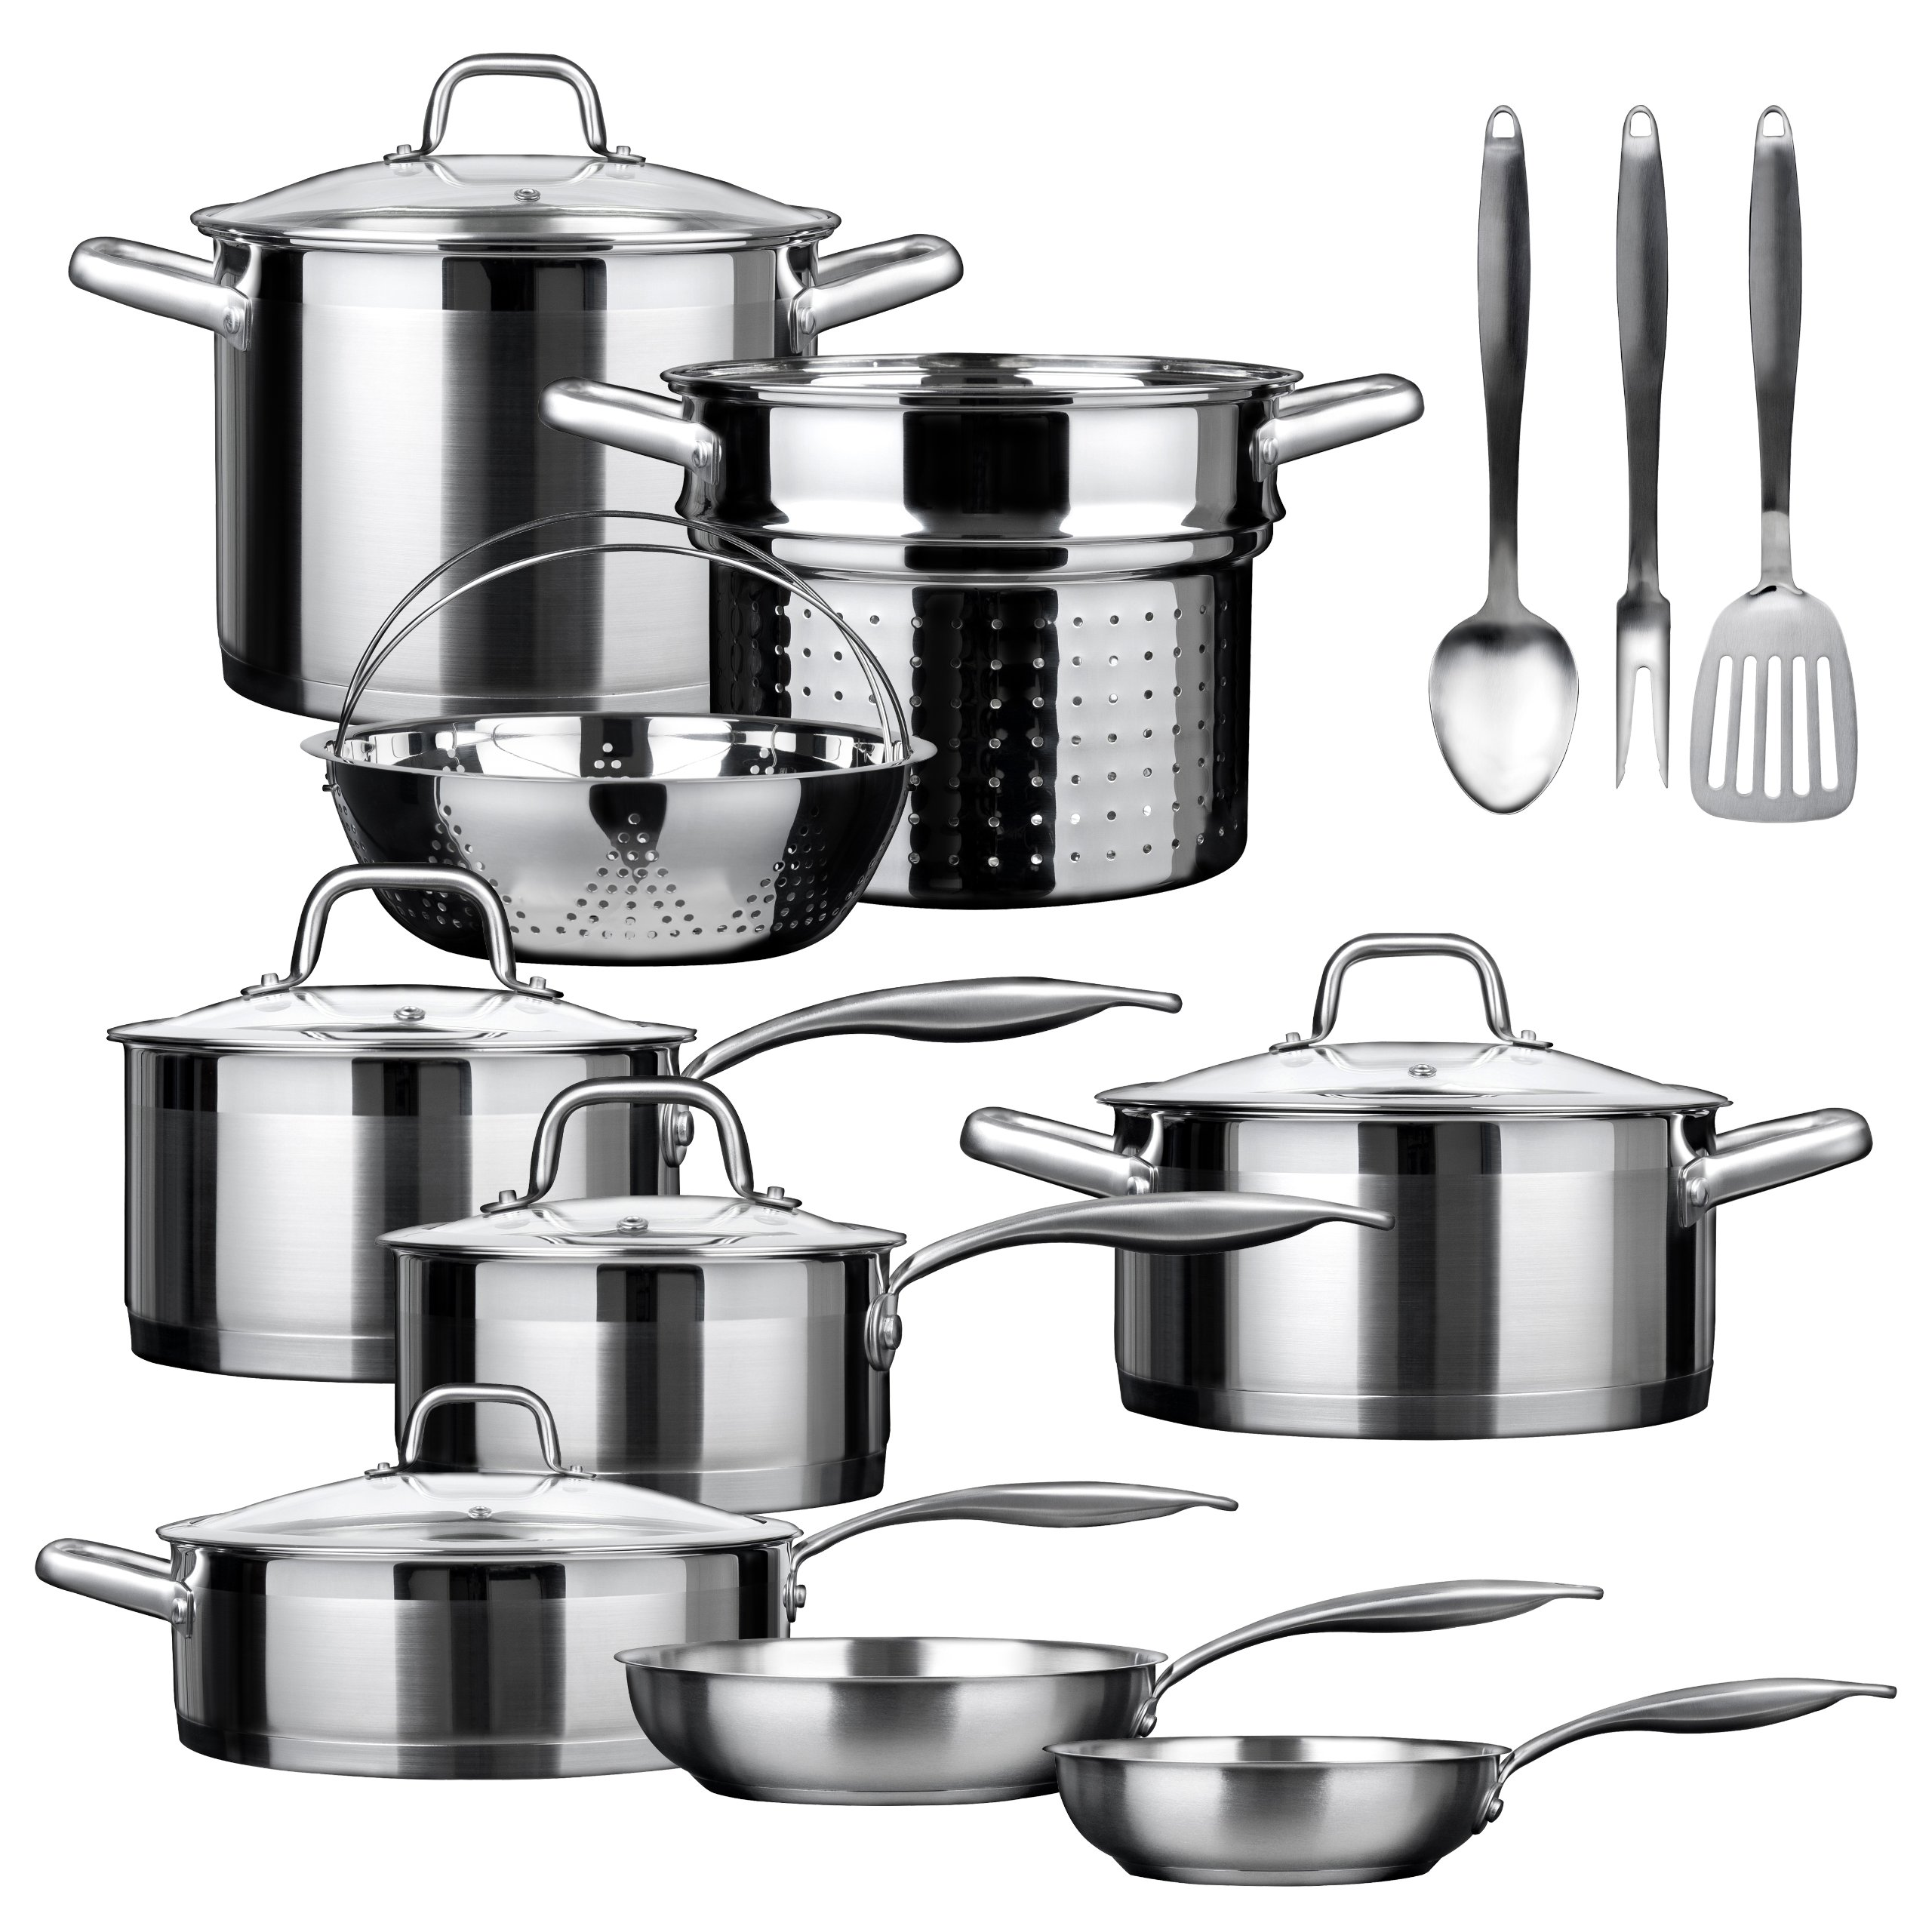 Duxtop SSIB-17 Professional 17 piece Stainless Steel Induction Cookware Set, Impact-bonded Technology by Secura (Image #1)